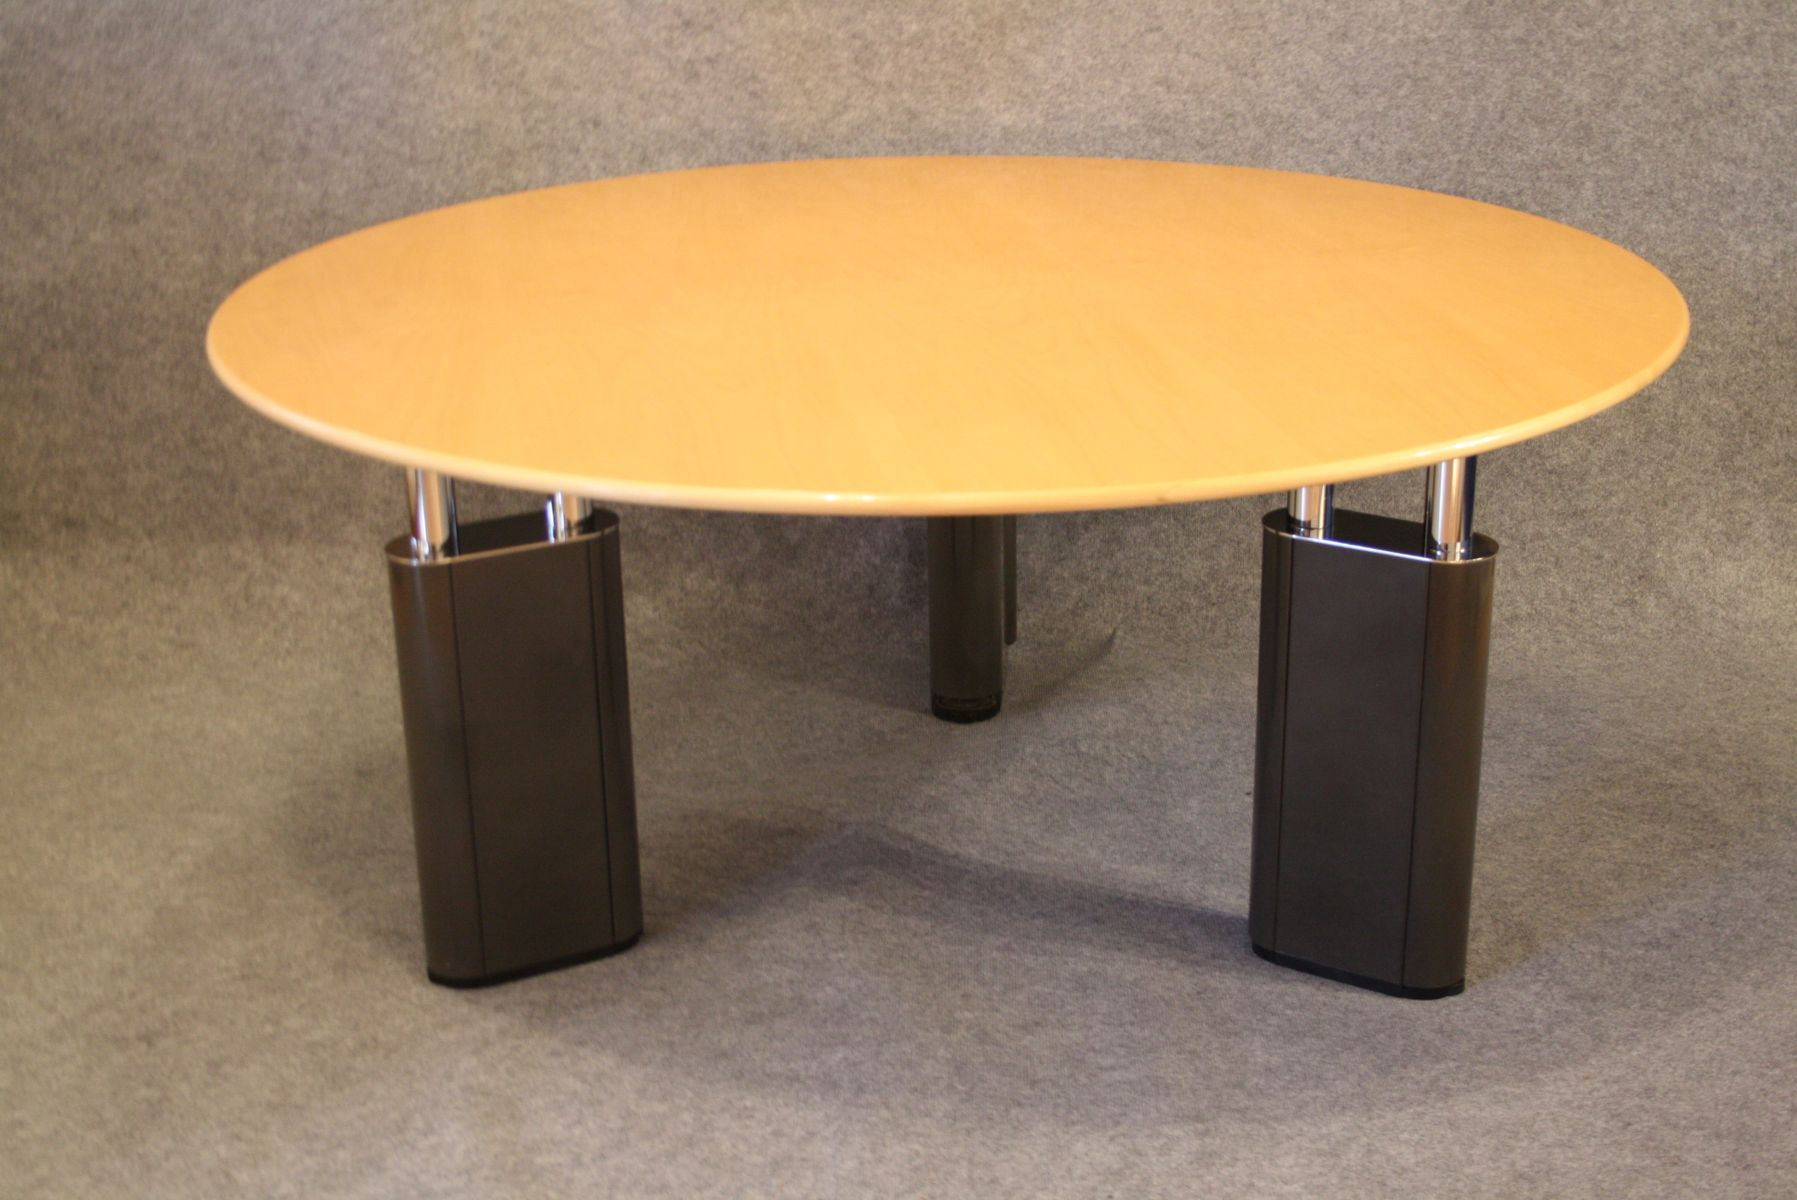 Kum Table by Gae Aulenti for Tecno 1999 for sale at Pamono